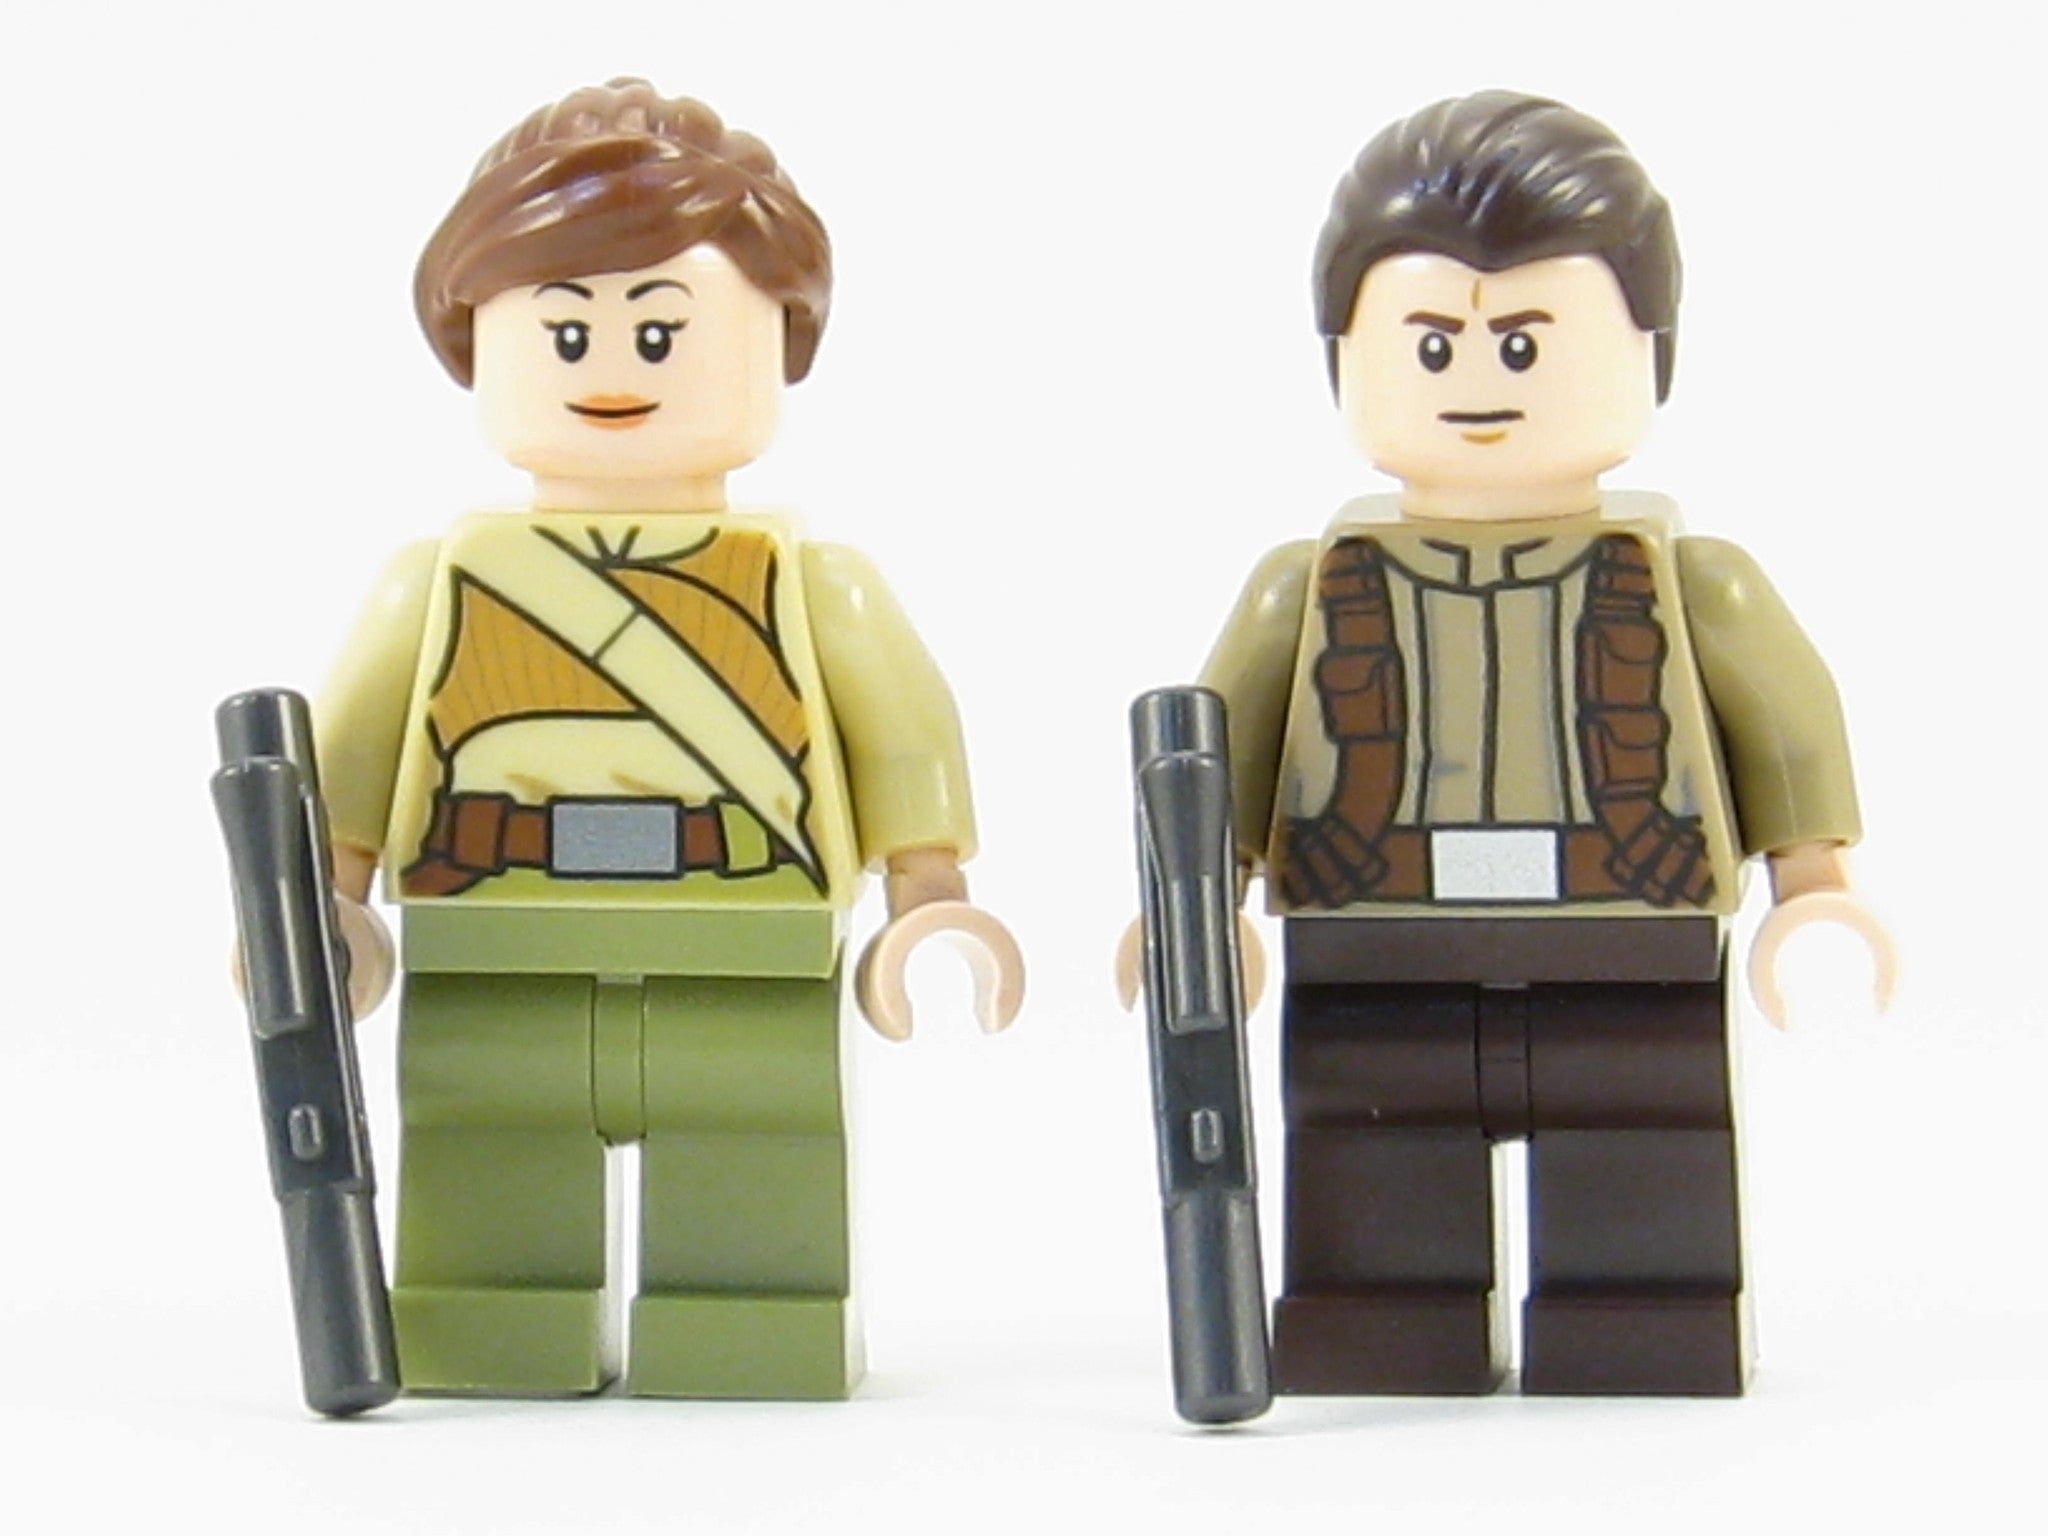 LEGO Star Wars Force Awakens Minifigures Lot of 2 Resistance Soldier Ep. 7 Minif